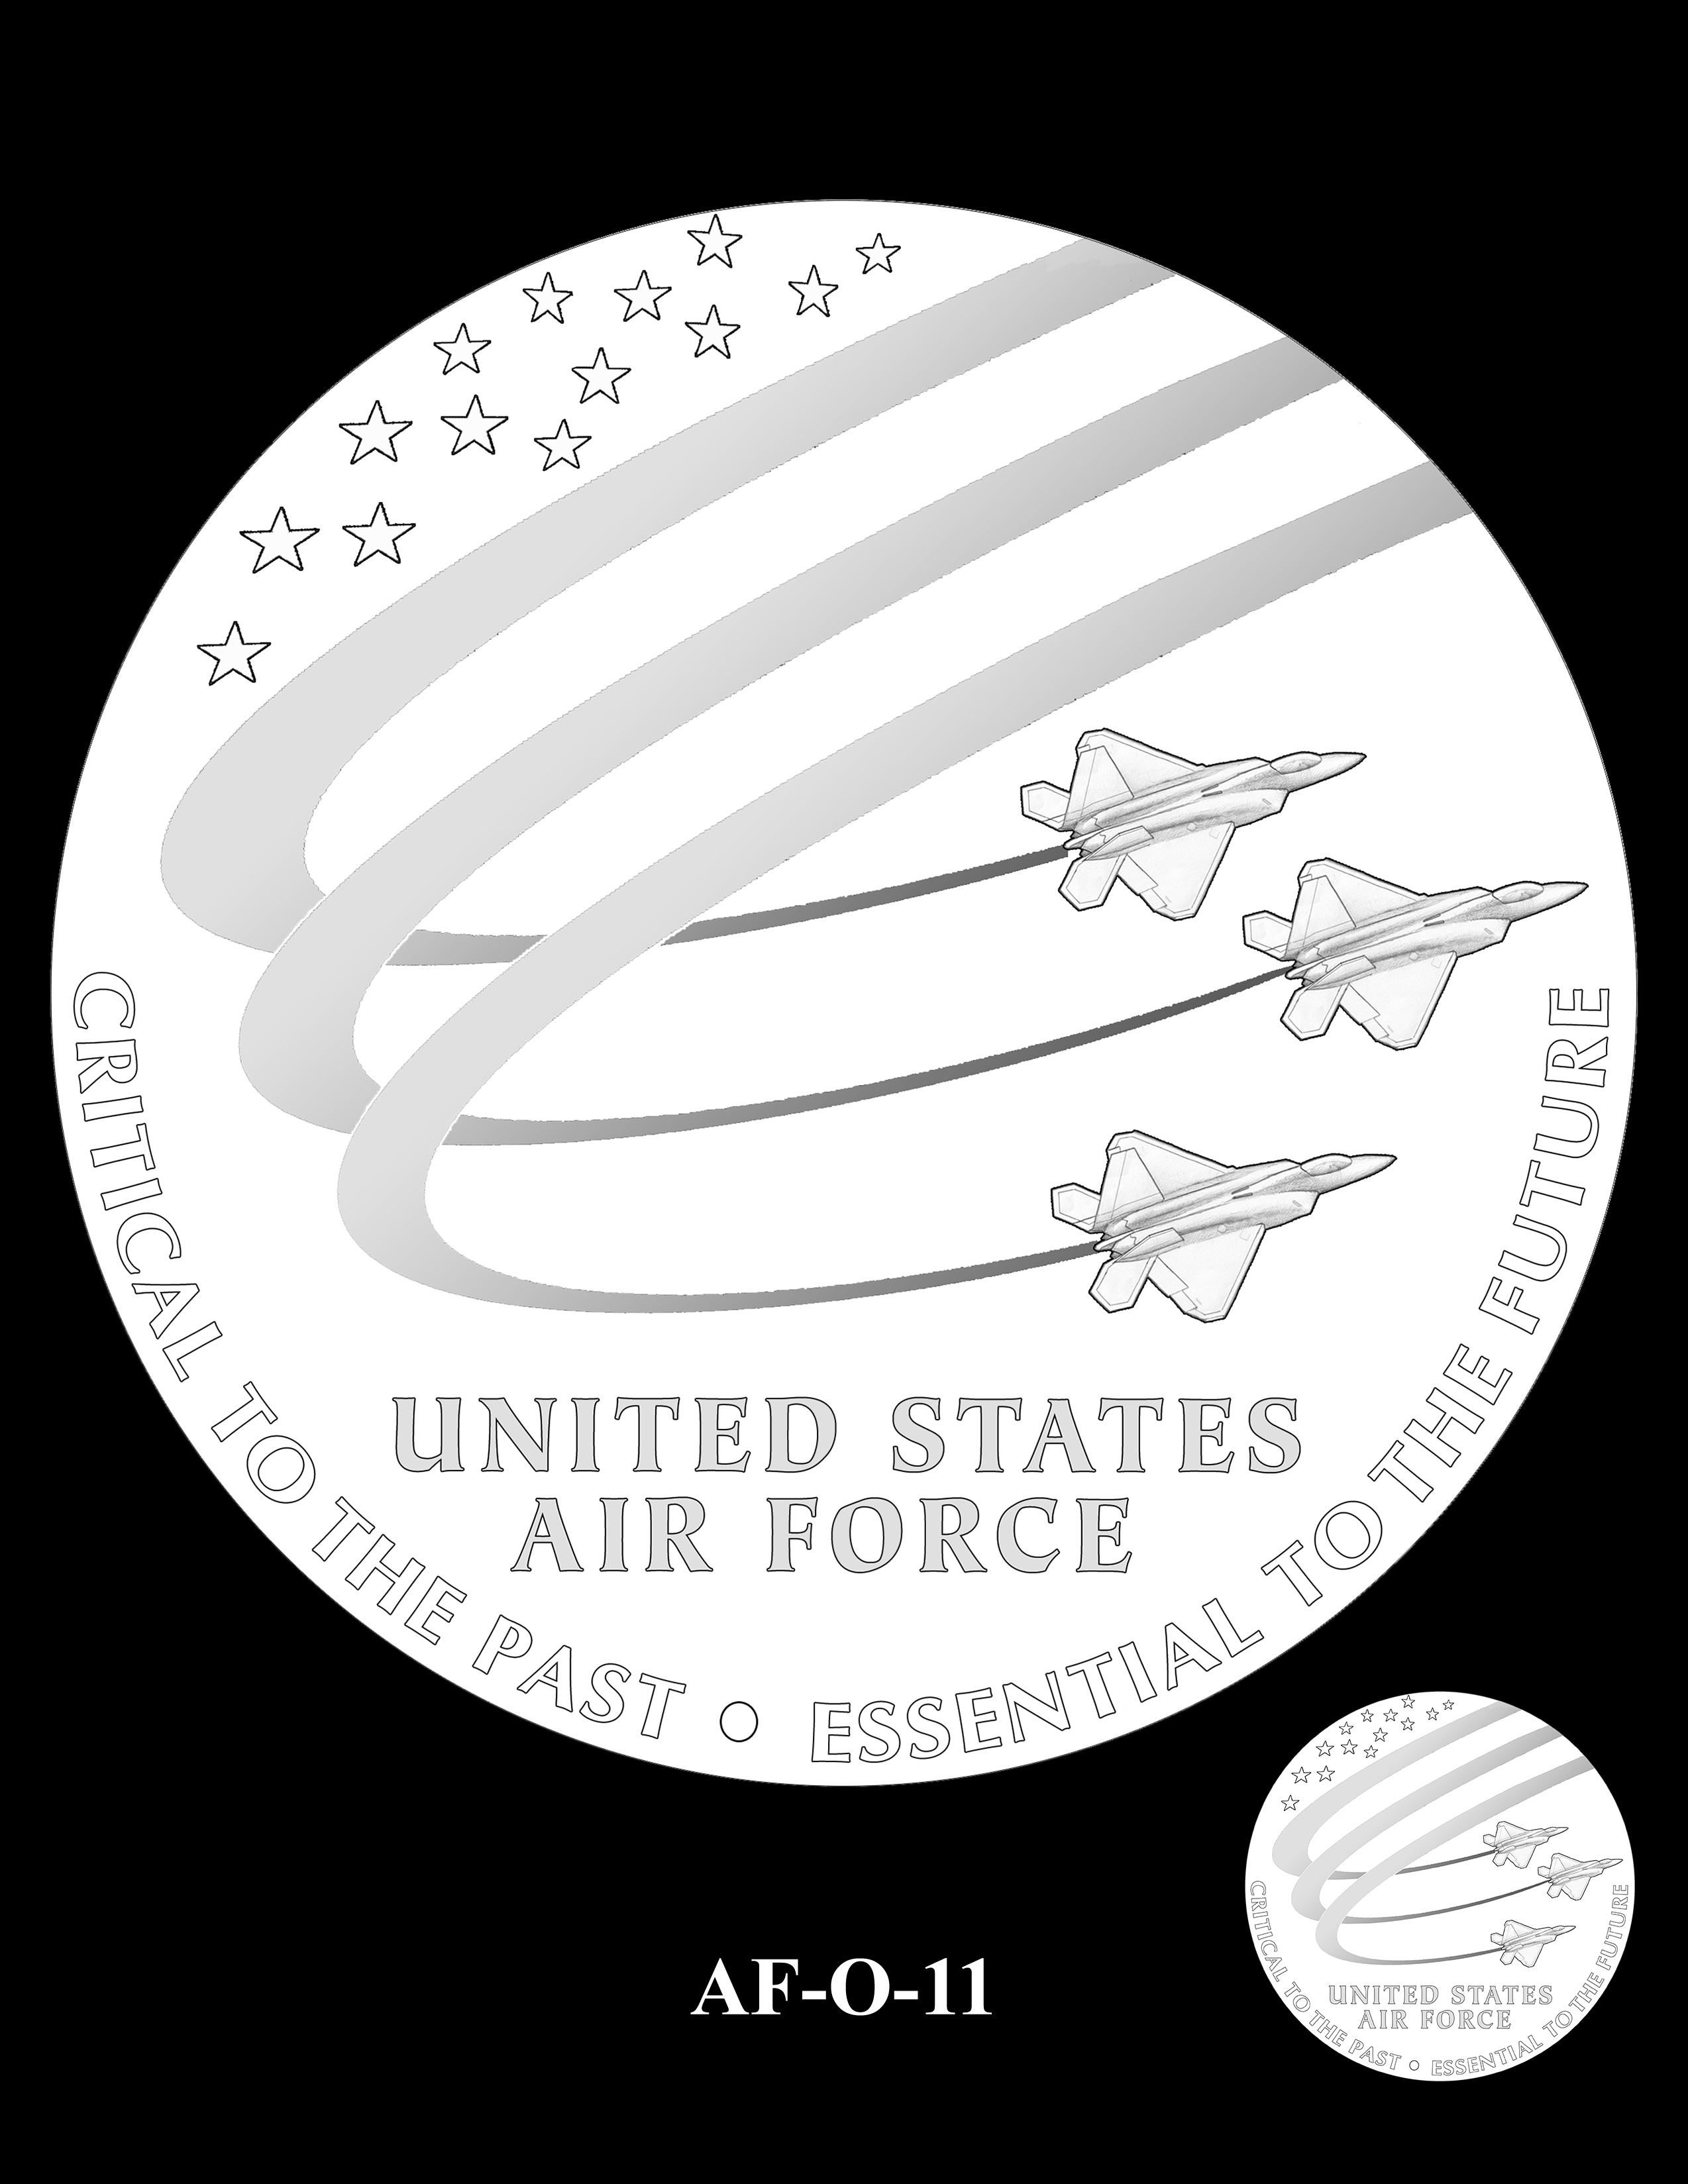 ccac october 16 2018 meeting 2020 air force medal coin update 1965 Proof Set Special 1997 united states mint prestige set us proof set